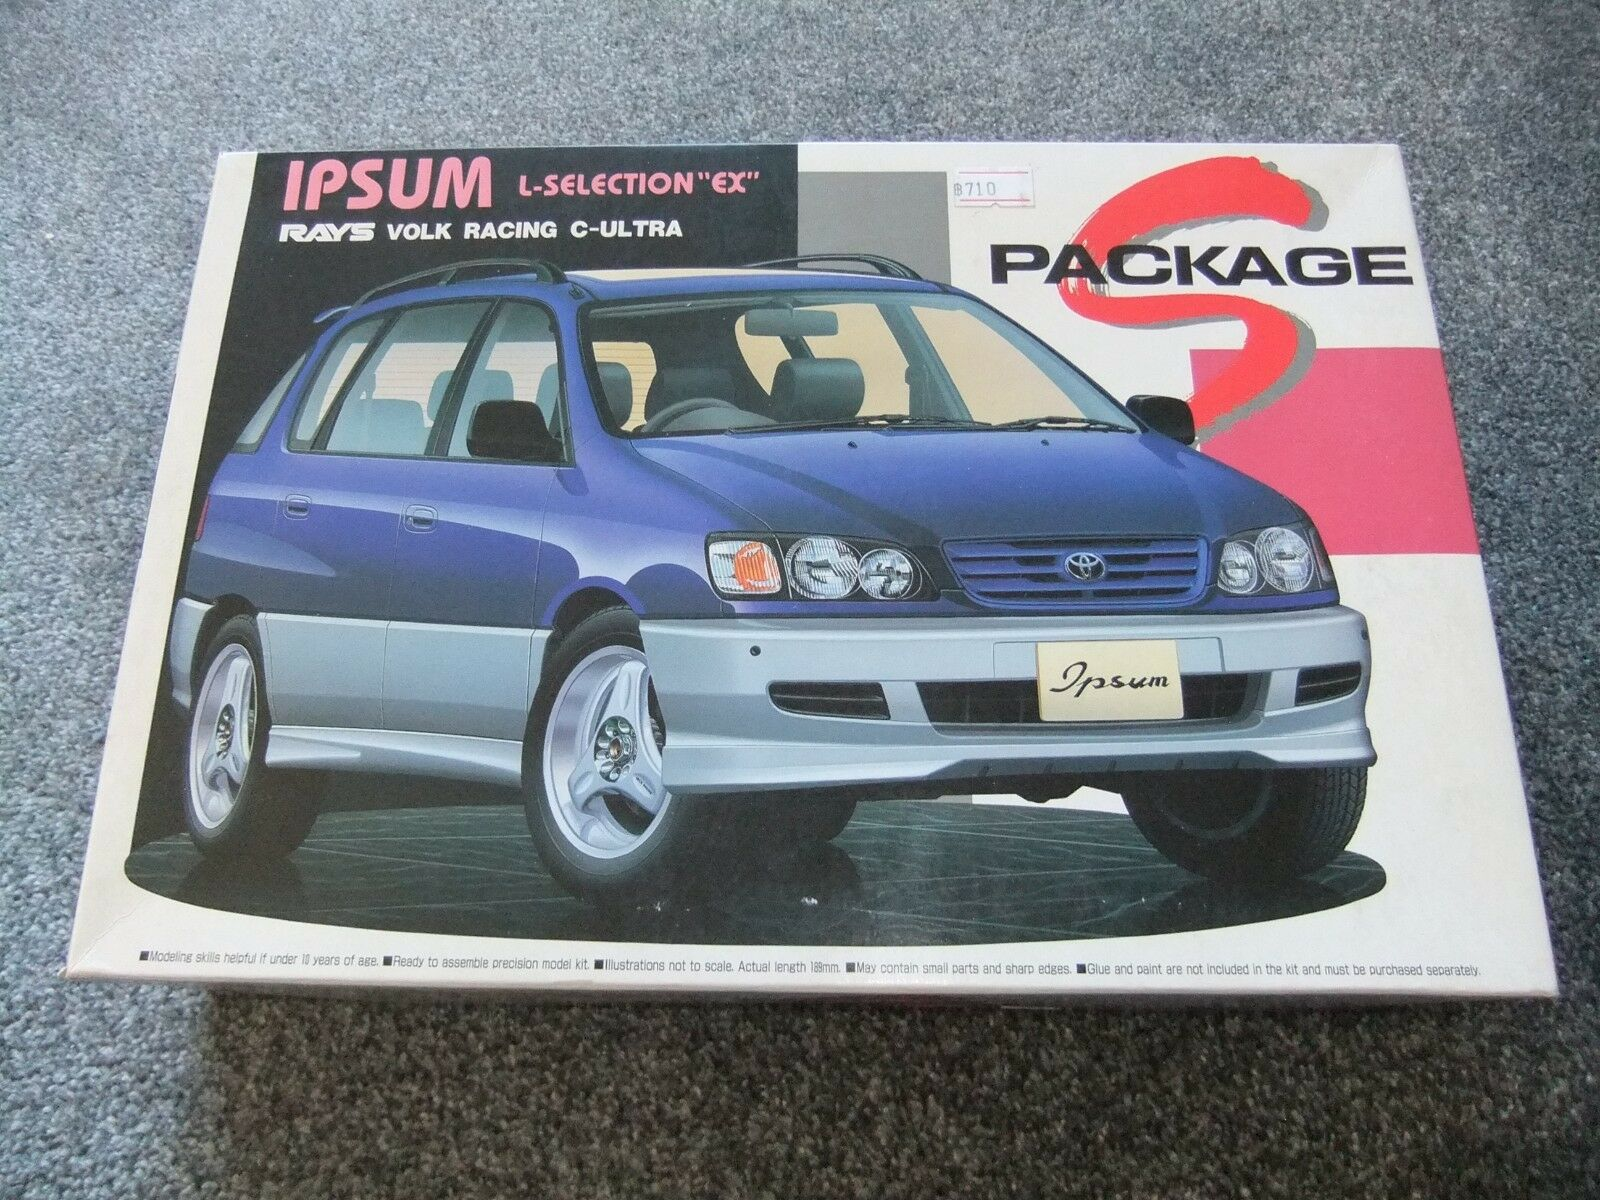 Aoshima S-01 019313 - 1 24 Toyota Ipsum L-Selection  EX  - Sealed Contents